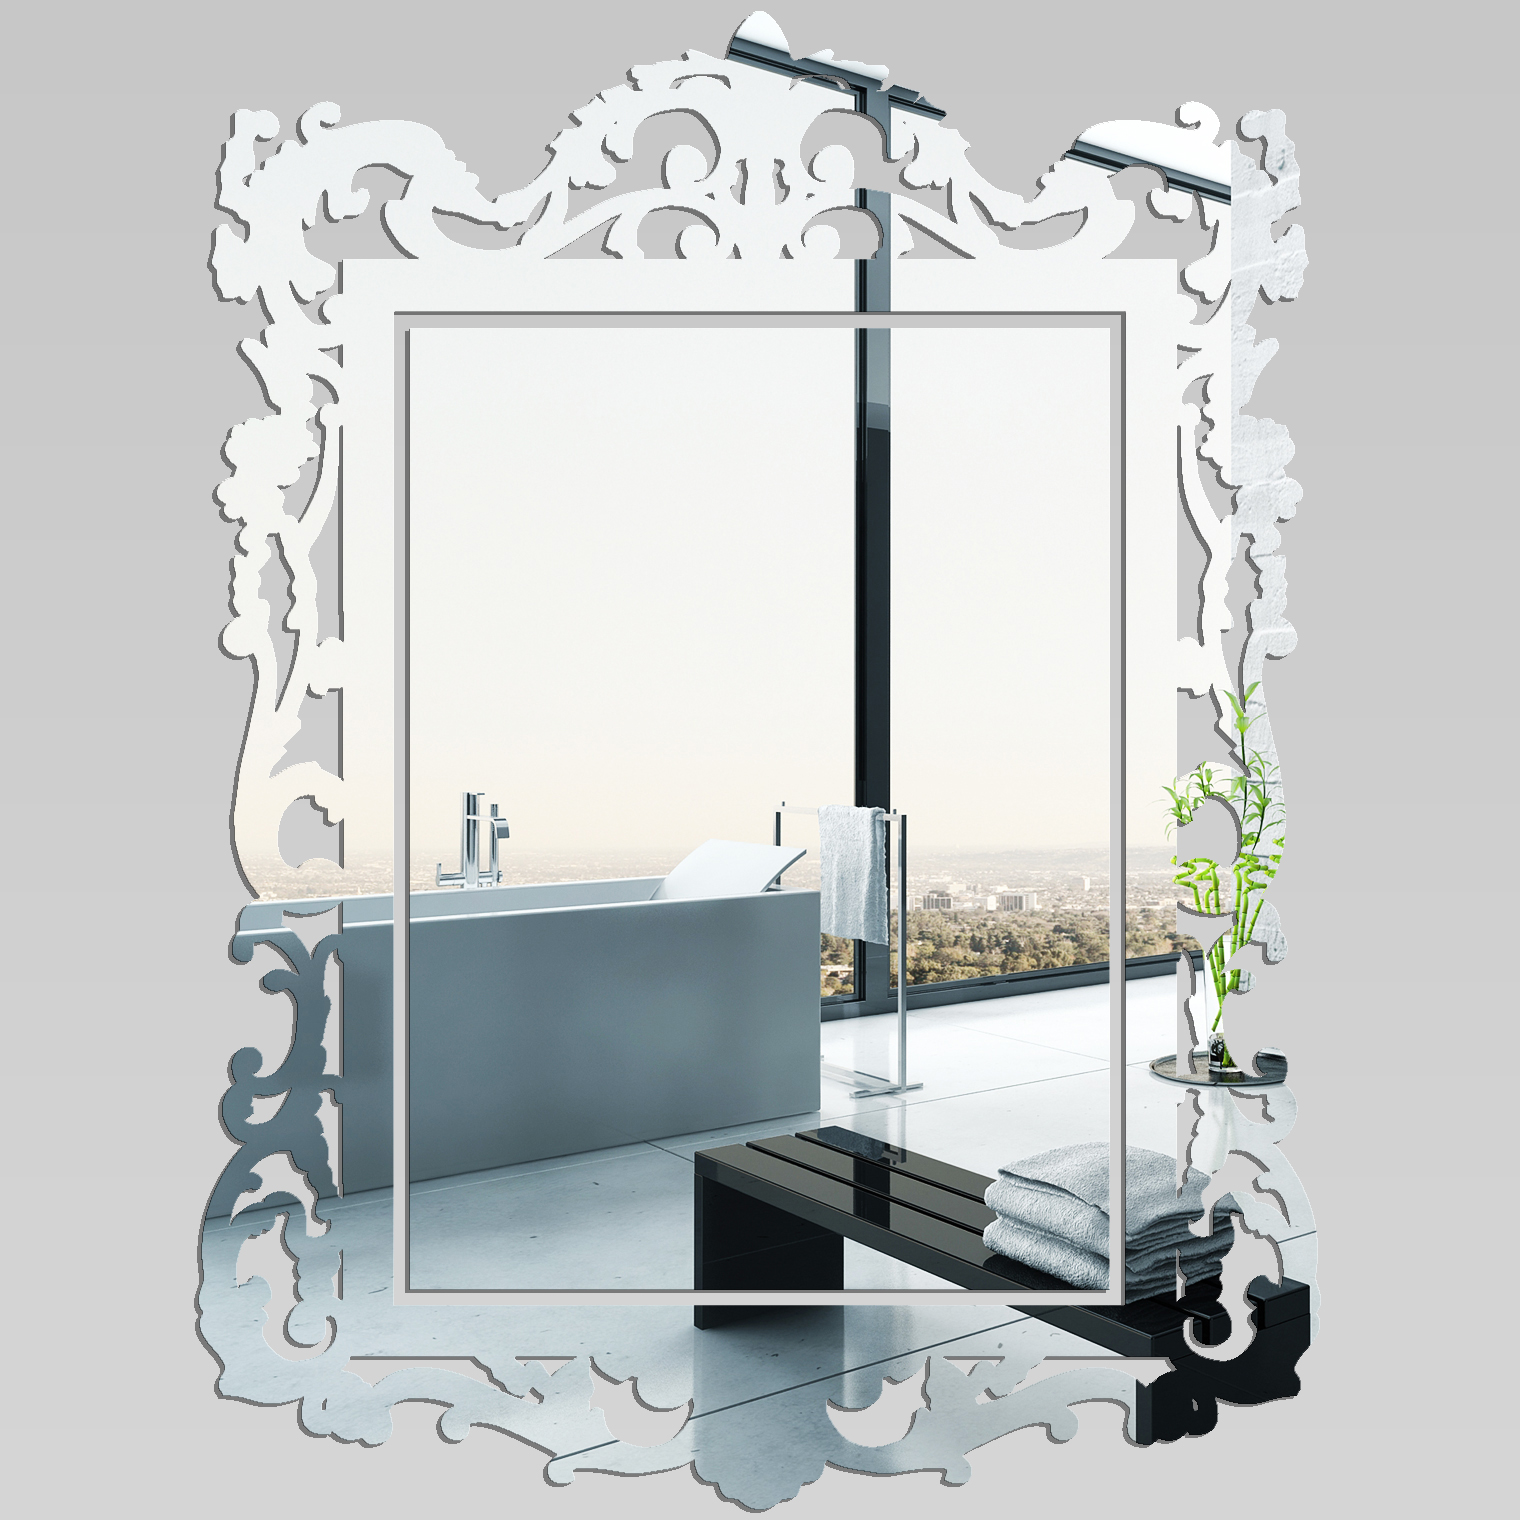 miroir plexiglass acrylique baroque pas cher. Black Bedroom Furniture Sets. Home Design Ideas